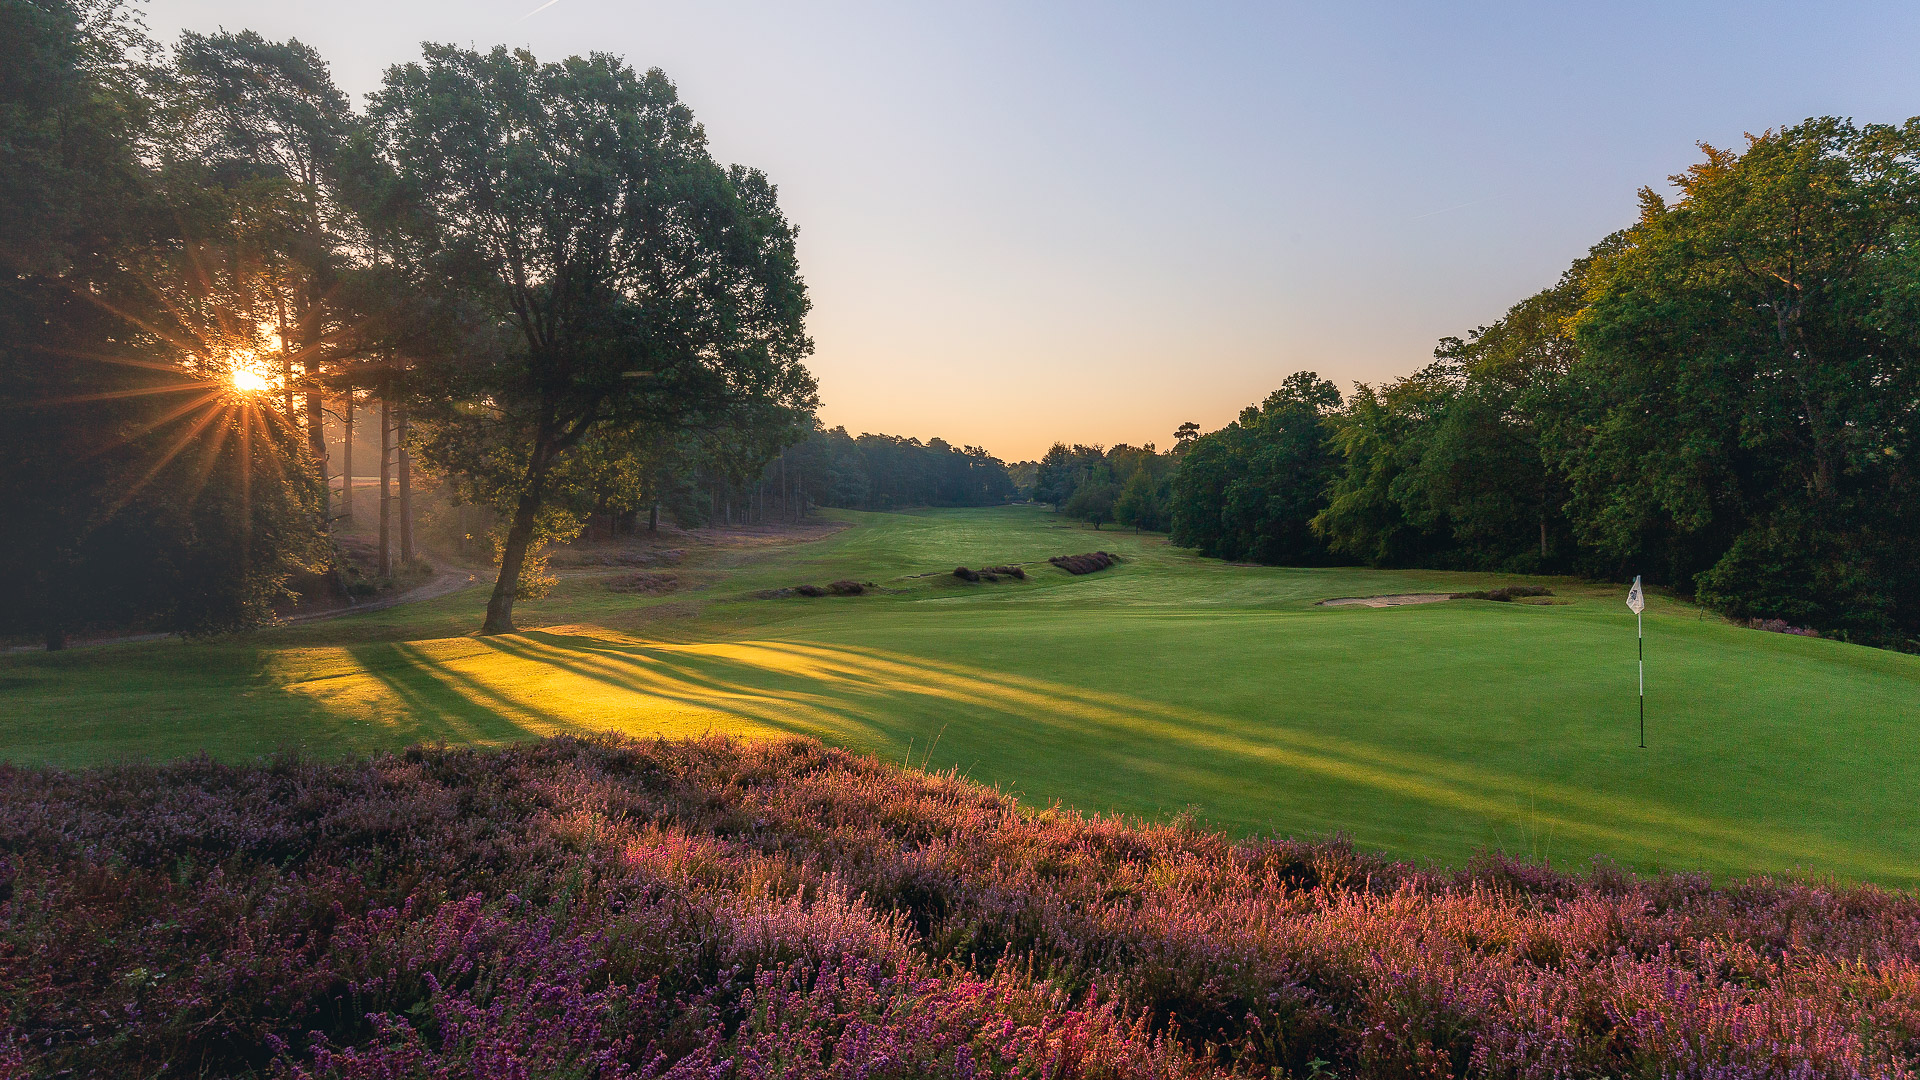 16th-Hole-St-Georges-Hill-Golf-Club-2651-Edit